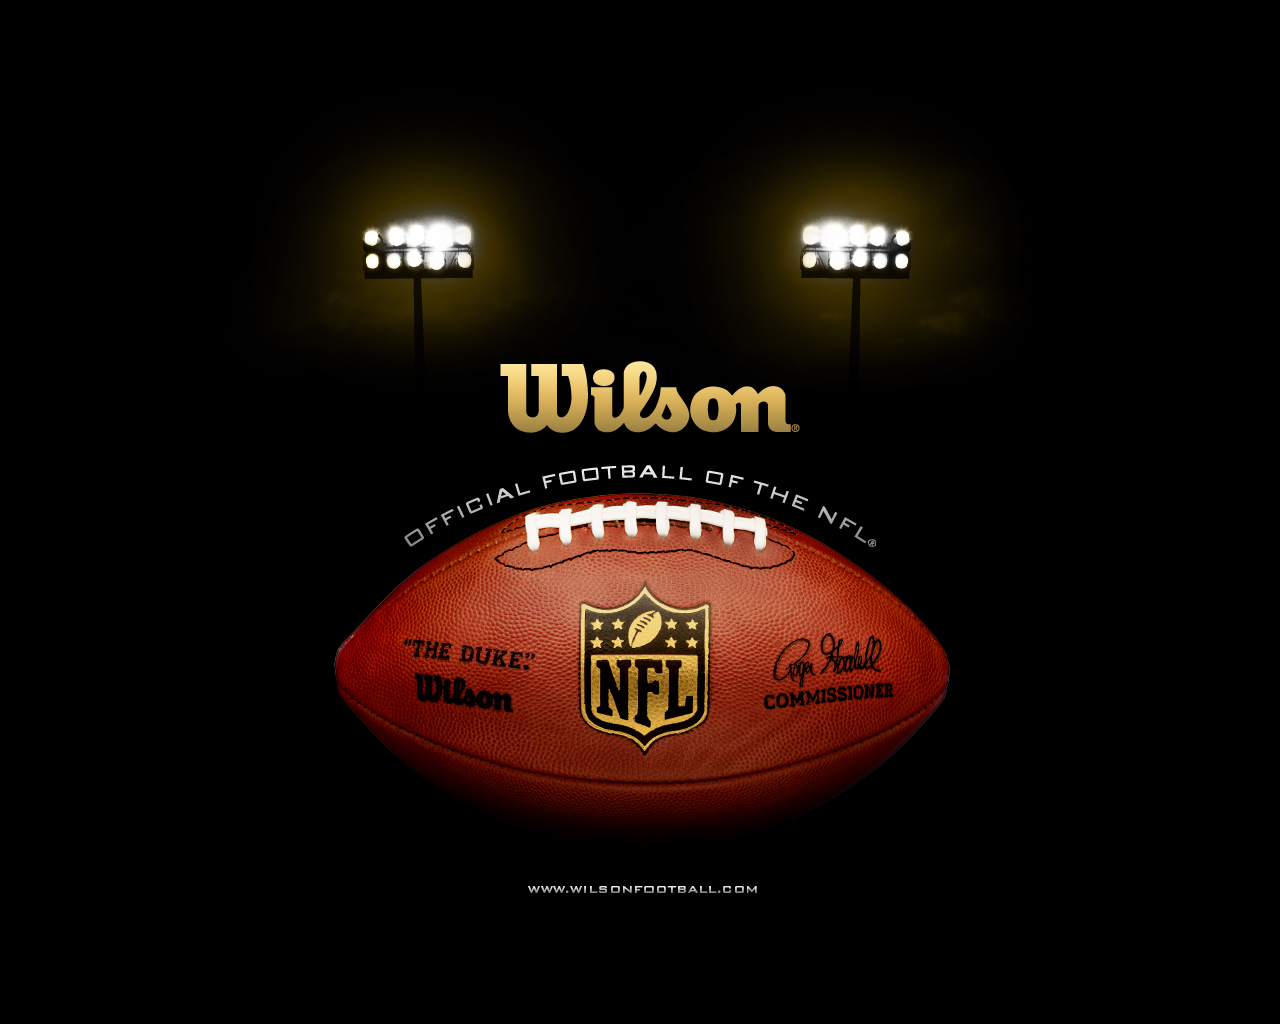 nfl football wallpaper 1280x1024